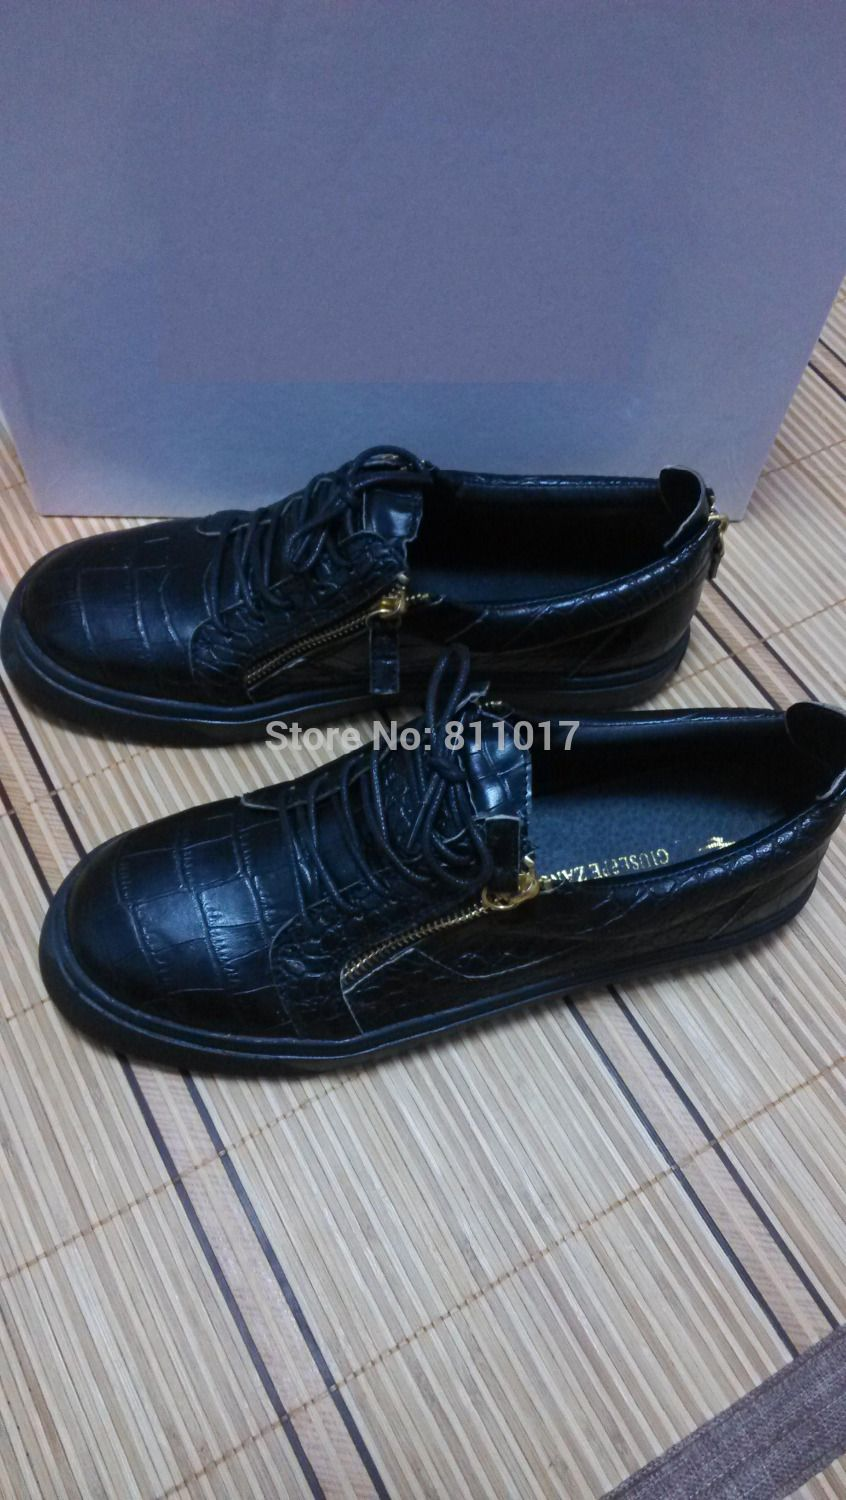 Find More Flats Information about Free Shipping!!!woman man zanotty black leather low top lace up sneakers plus size 35 46 popular giuseppe shoes on sale,High Quality sneakers dresses,China sneakers shoes for women Suppliers, Cheap shoes lv from Brand Products Co,.Ltd on Aliexpress.com